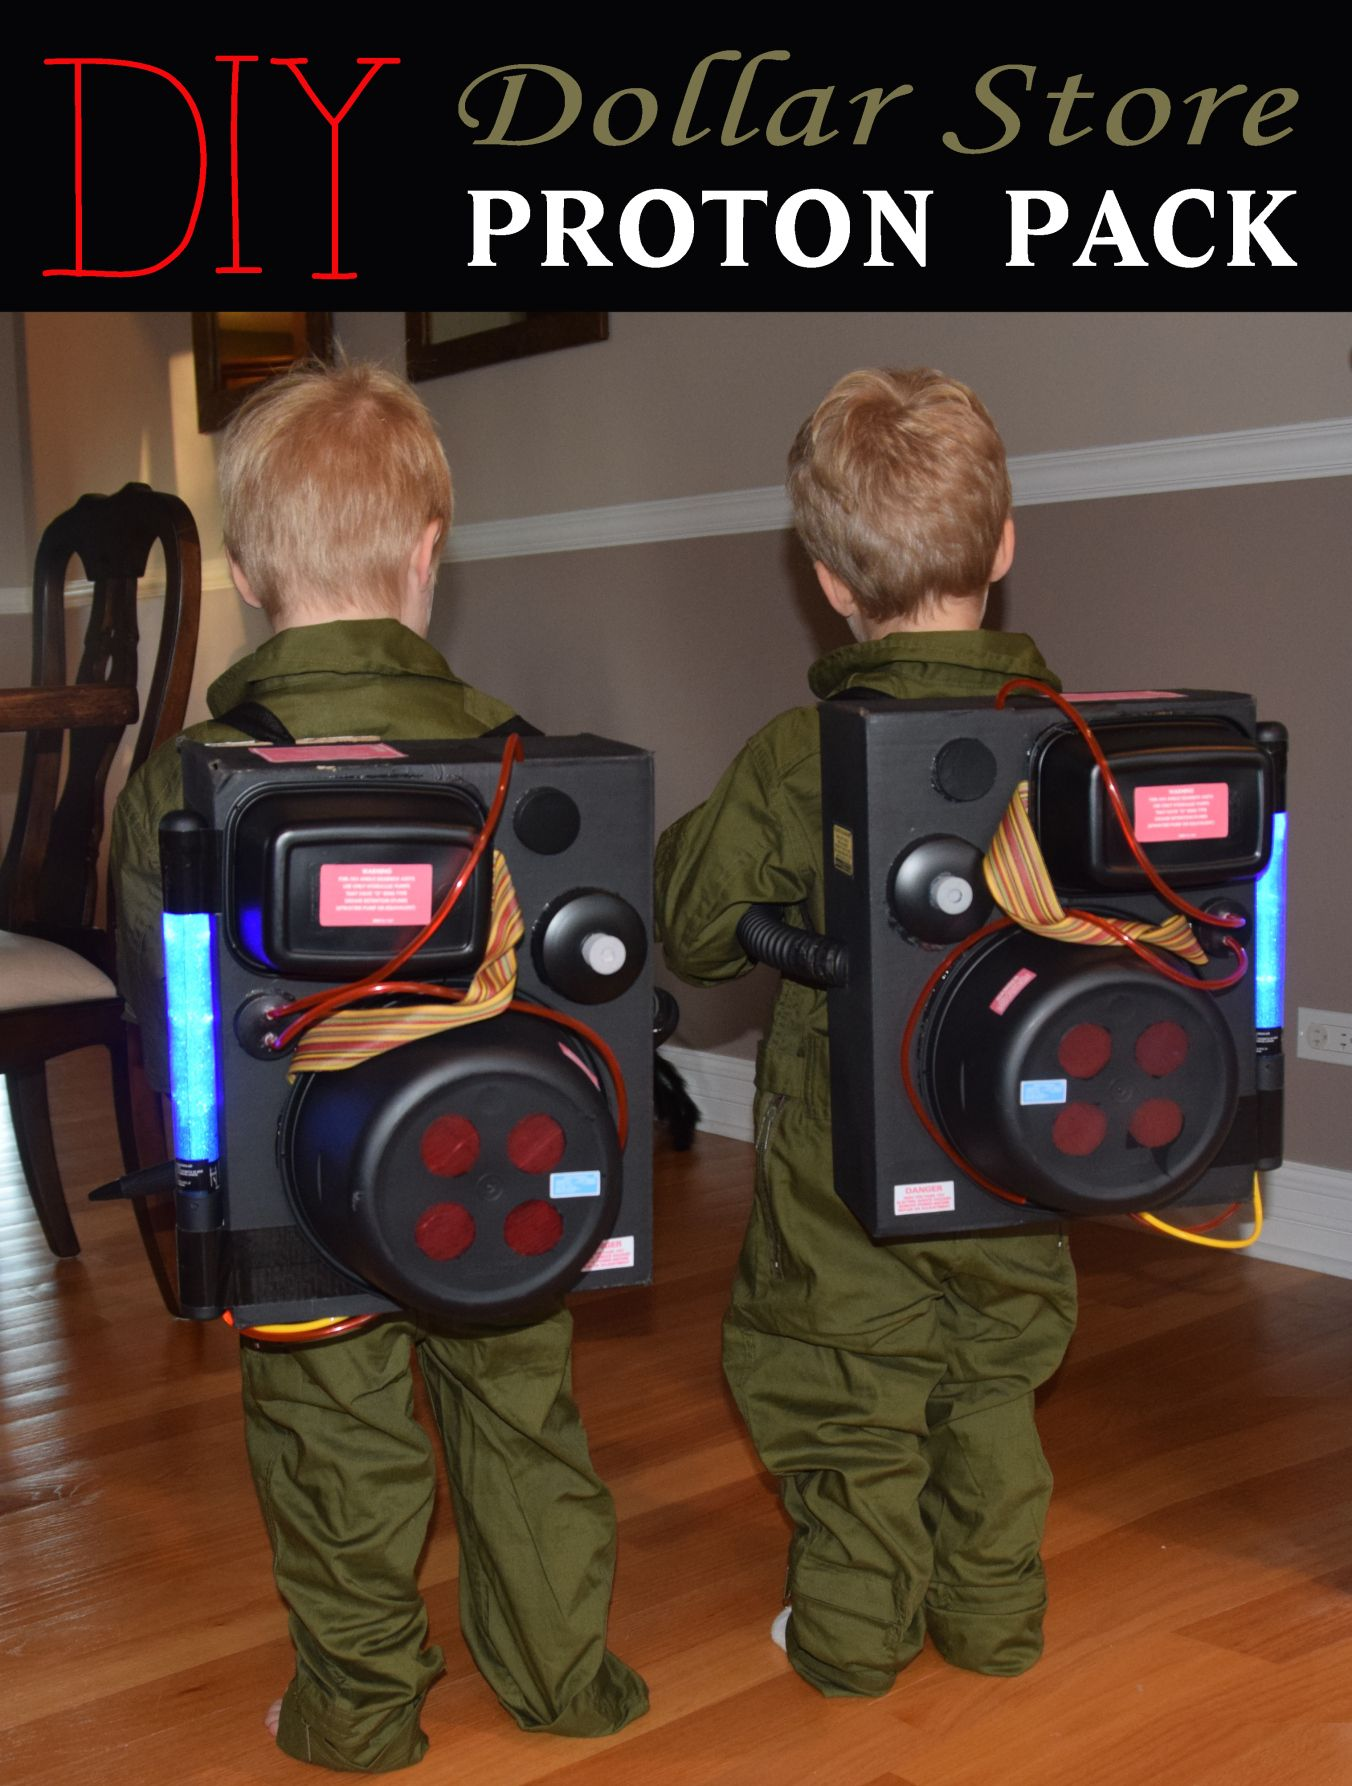 Diy Dollar Store Proton Pack And Ghostbusters Halloween Costume For